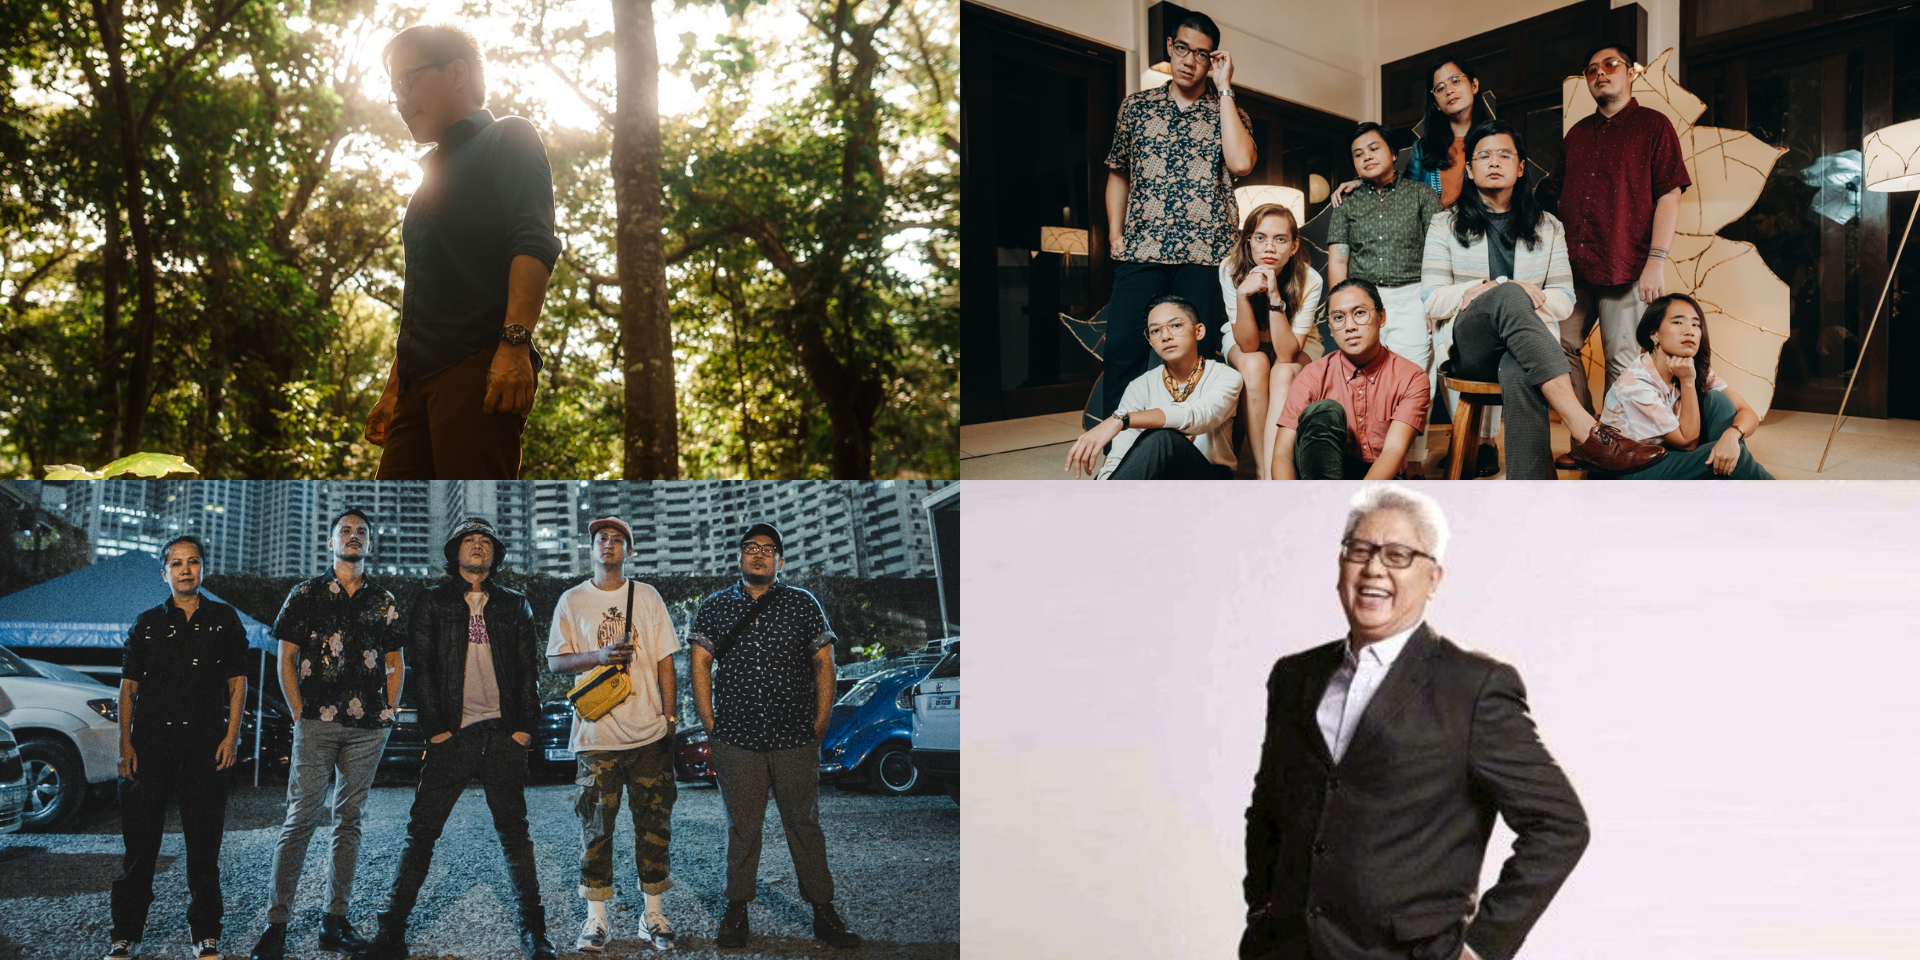 Ben&Ben, Ryan Cayabyab, Ebe Dancel, Sandwich, and more come together for 3-day online music fundraiser festival, Juno Jams